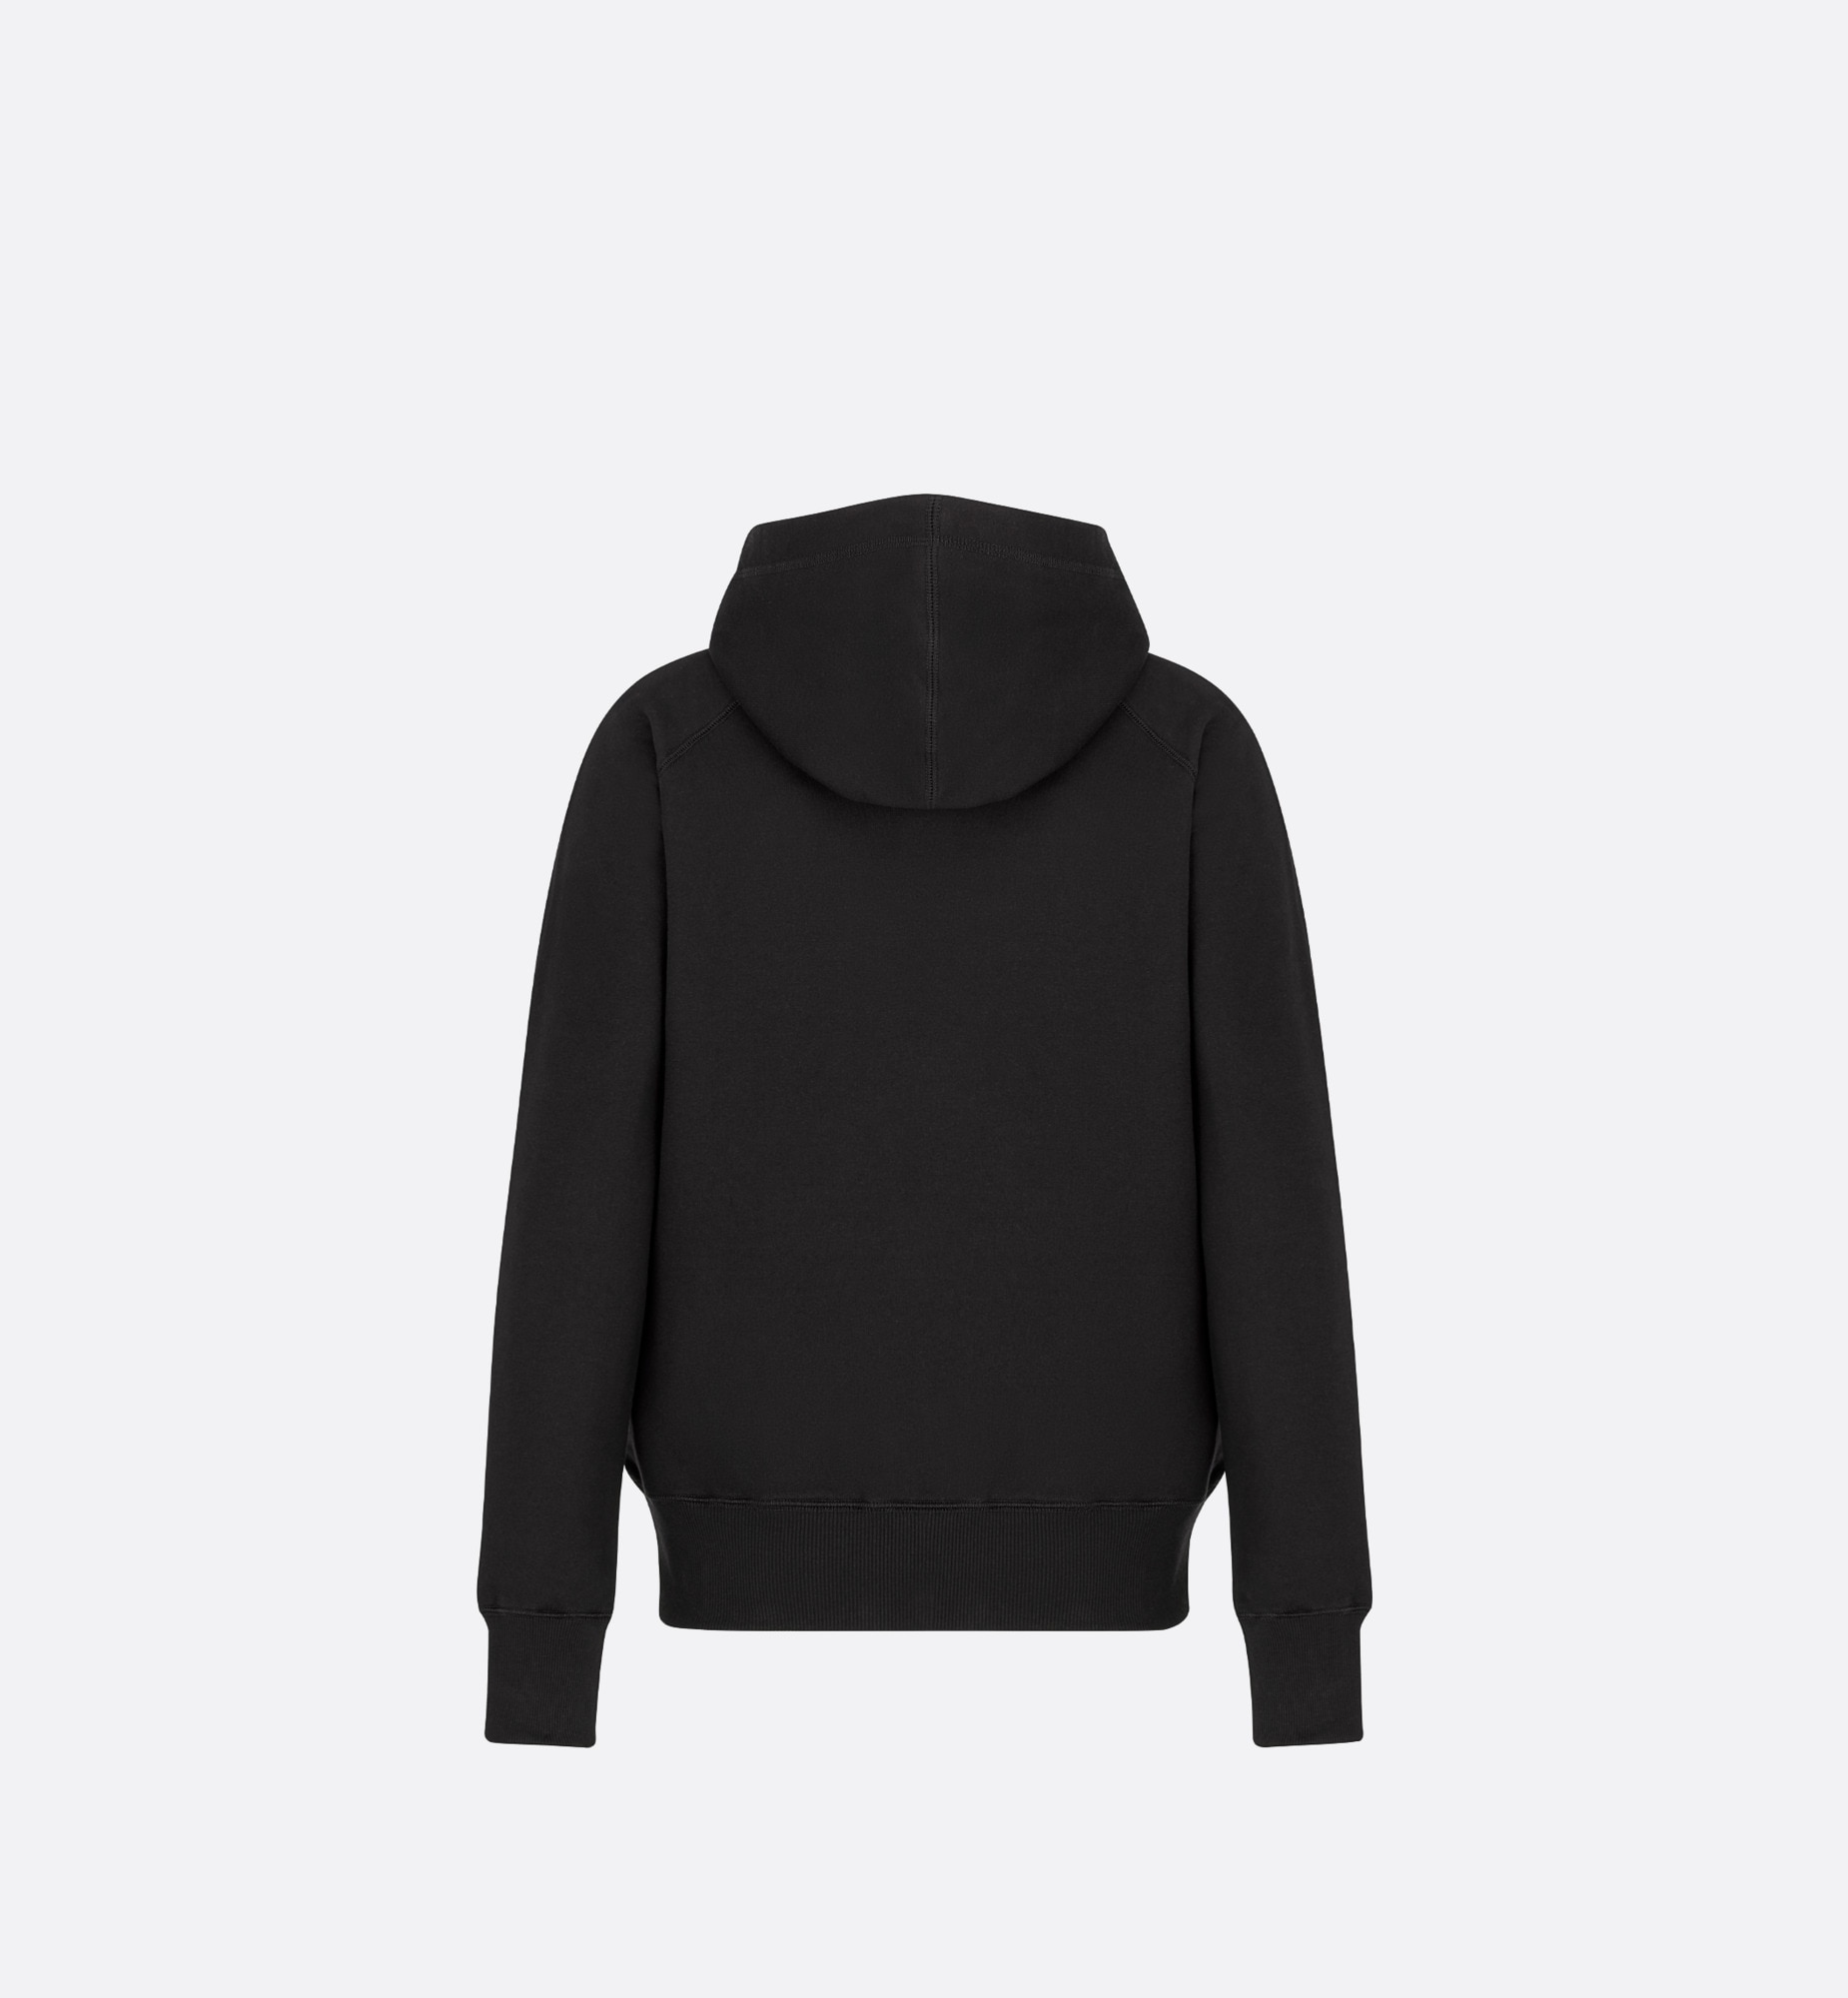 DIOR AND PETER DOIG Hooded Sweatshirt Back view Open gallery